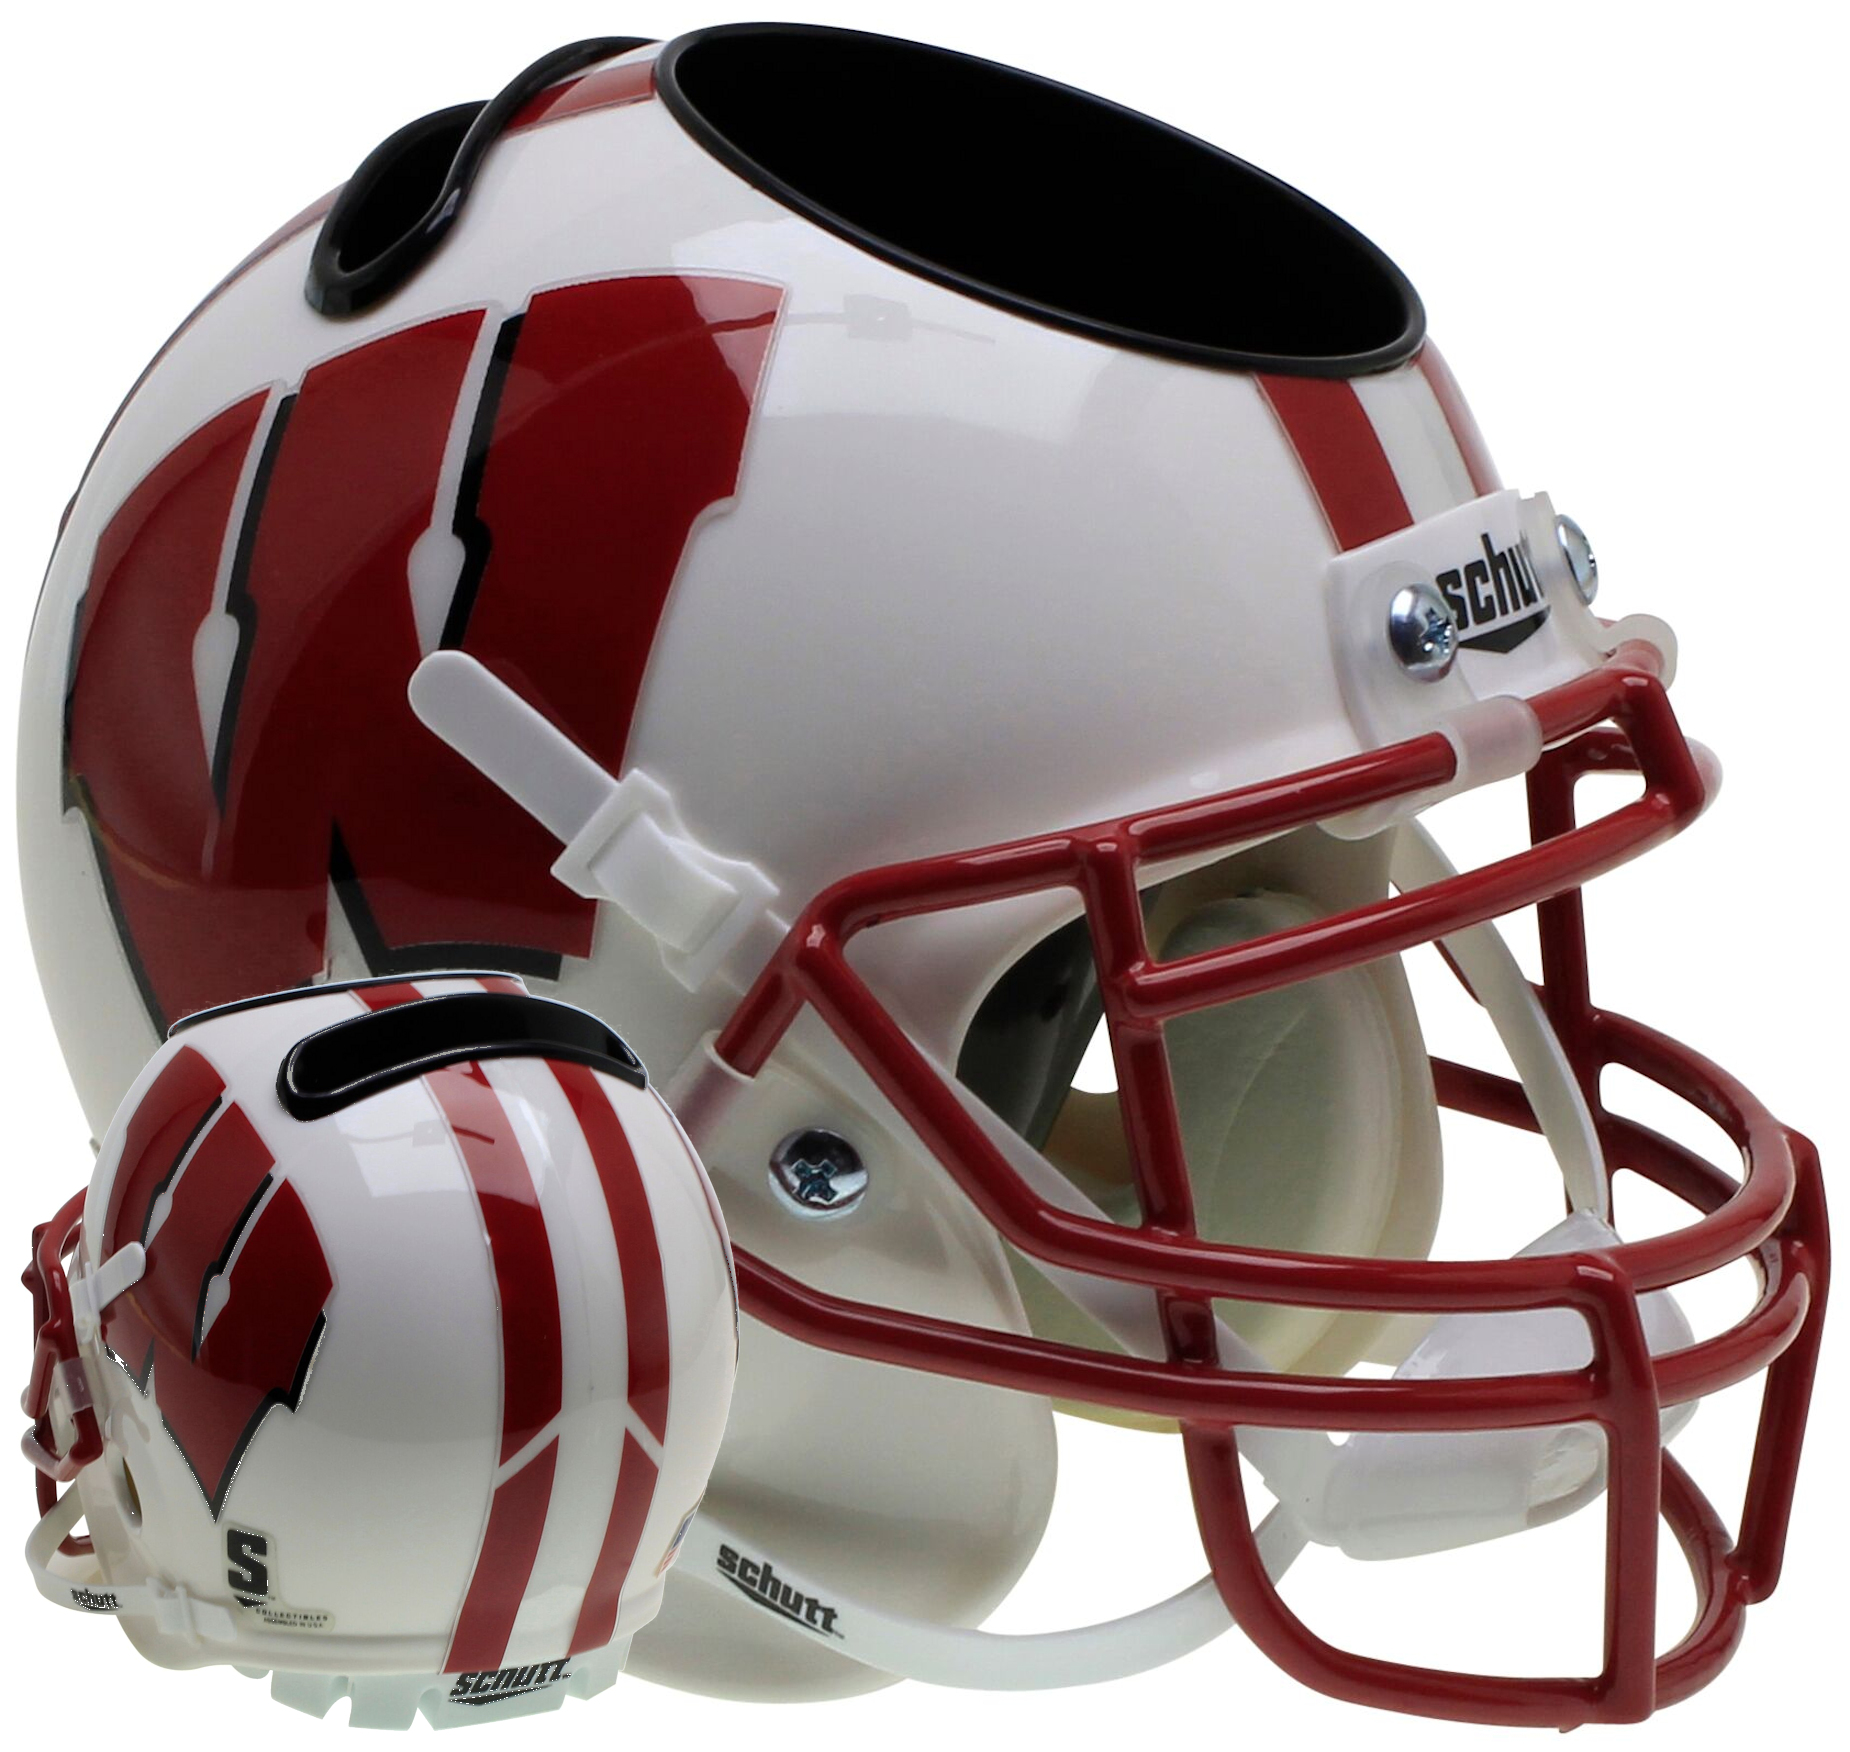 Wisconsin Badgers Miniature Football Helmet Desk Caddy <B>White</B>